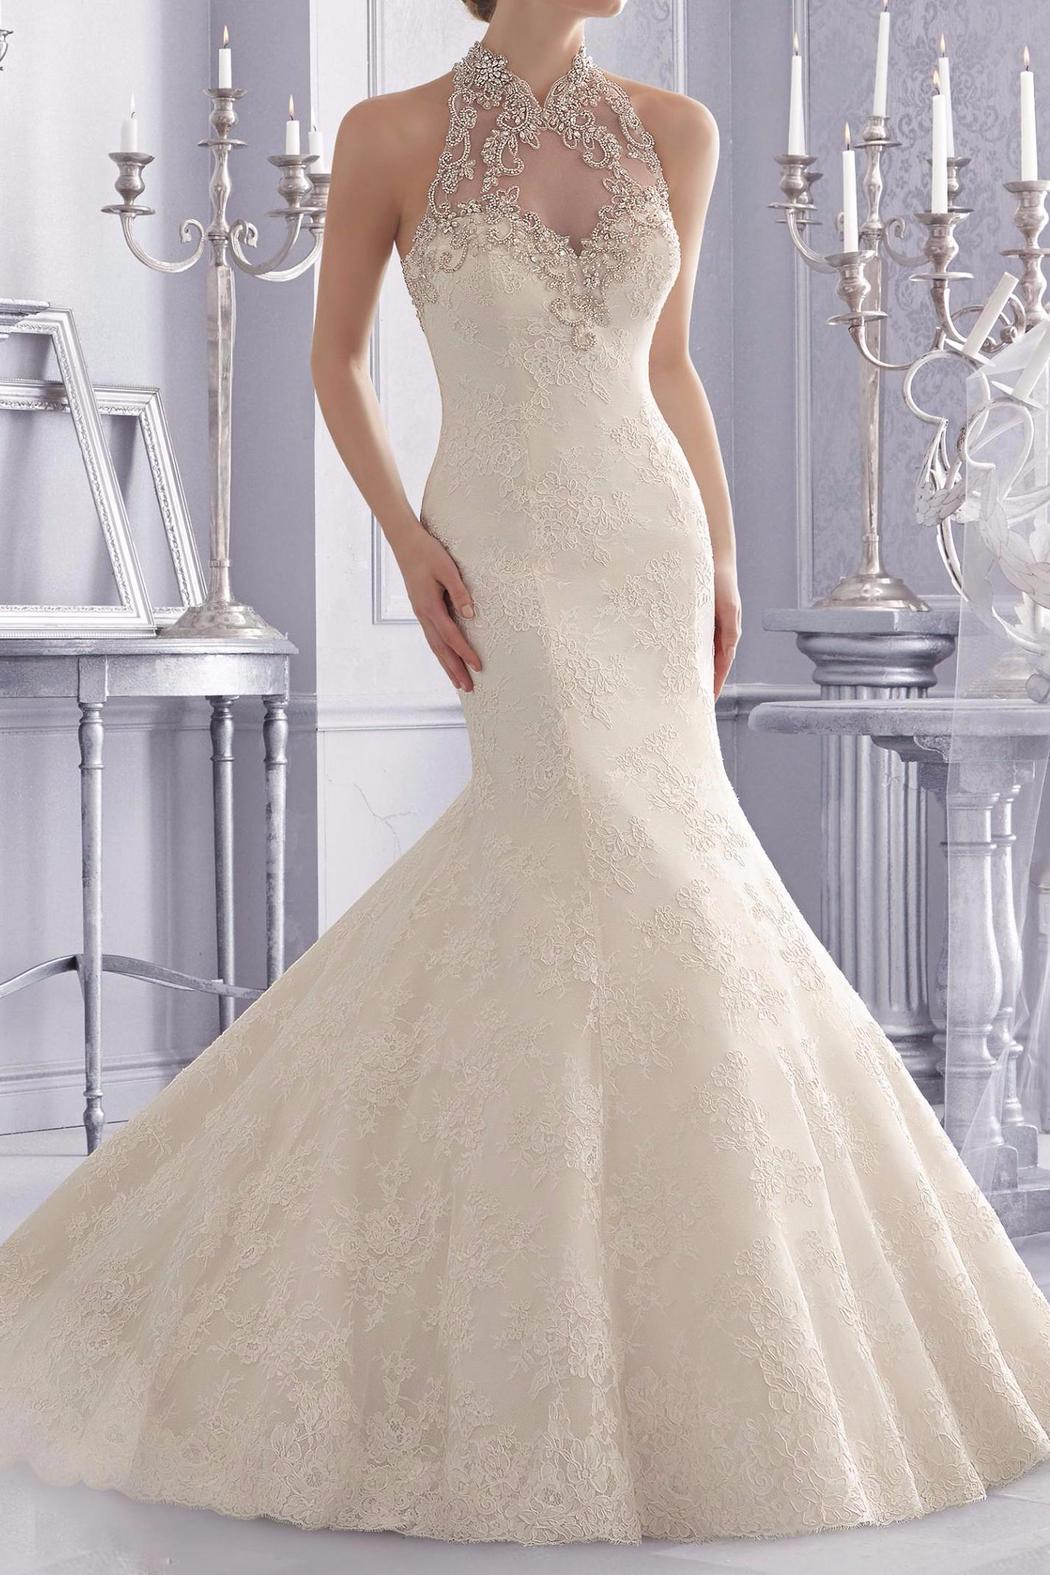 Morilee Halter Top Bridal Gown from North Dakota by BridalNMore ...